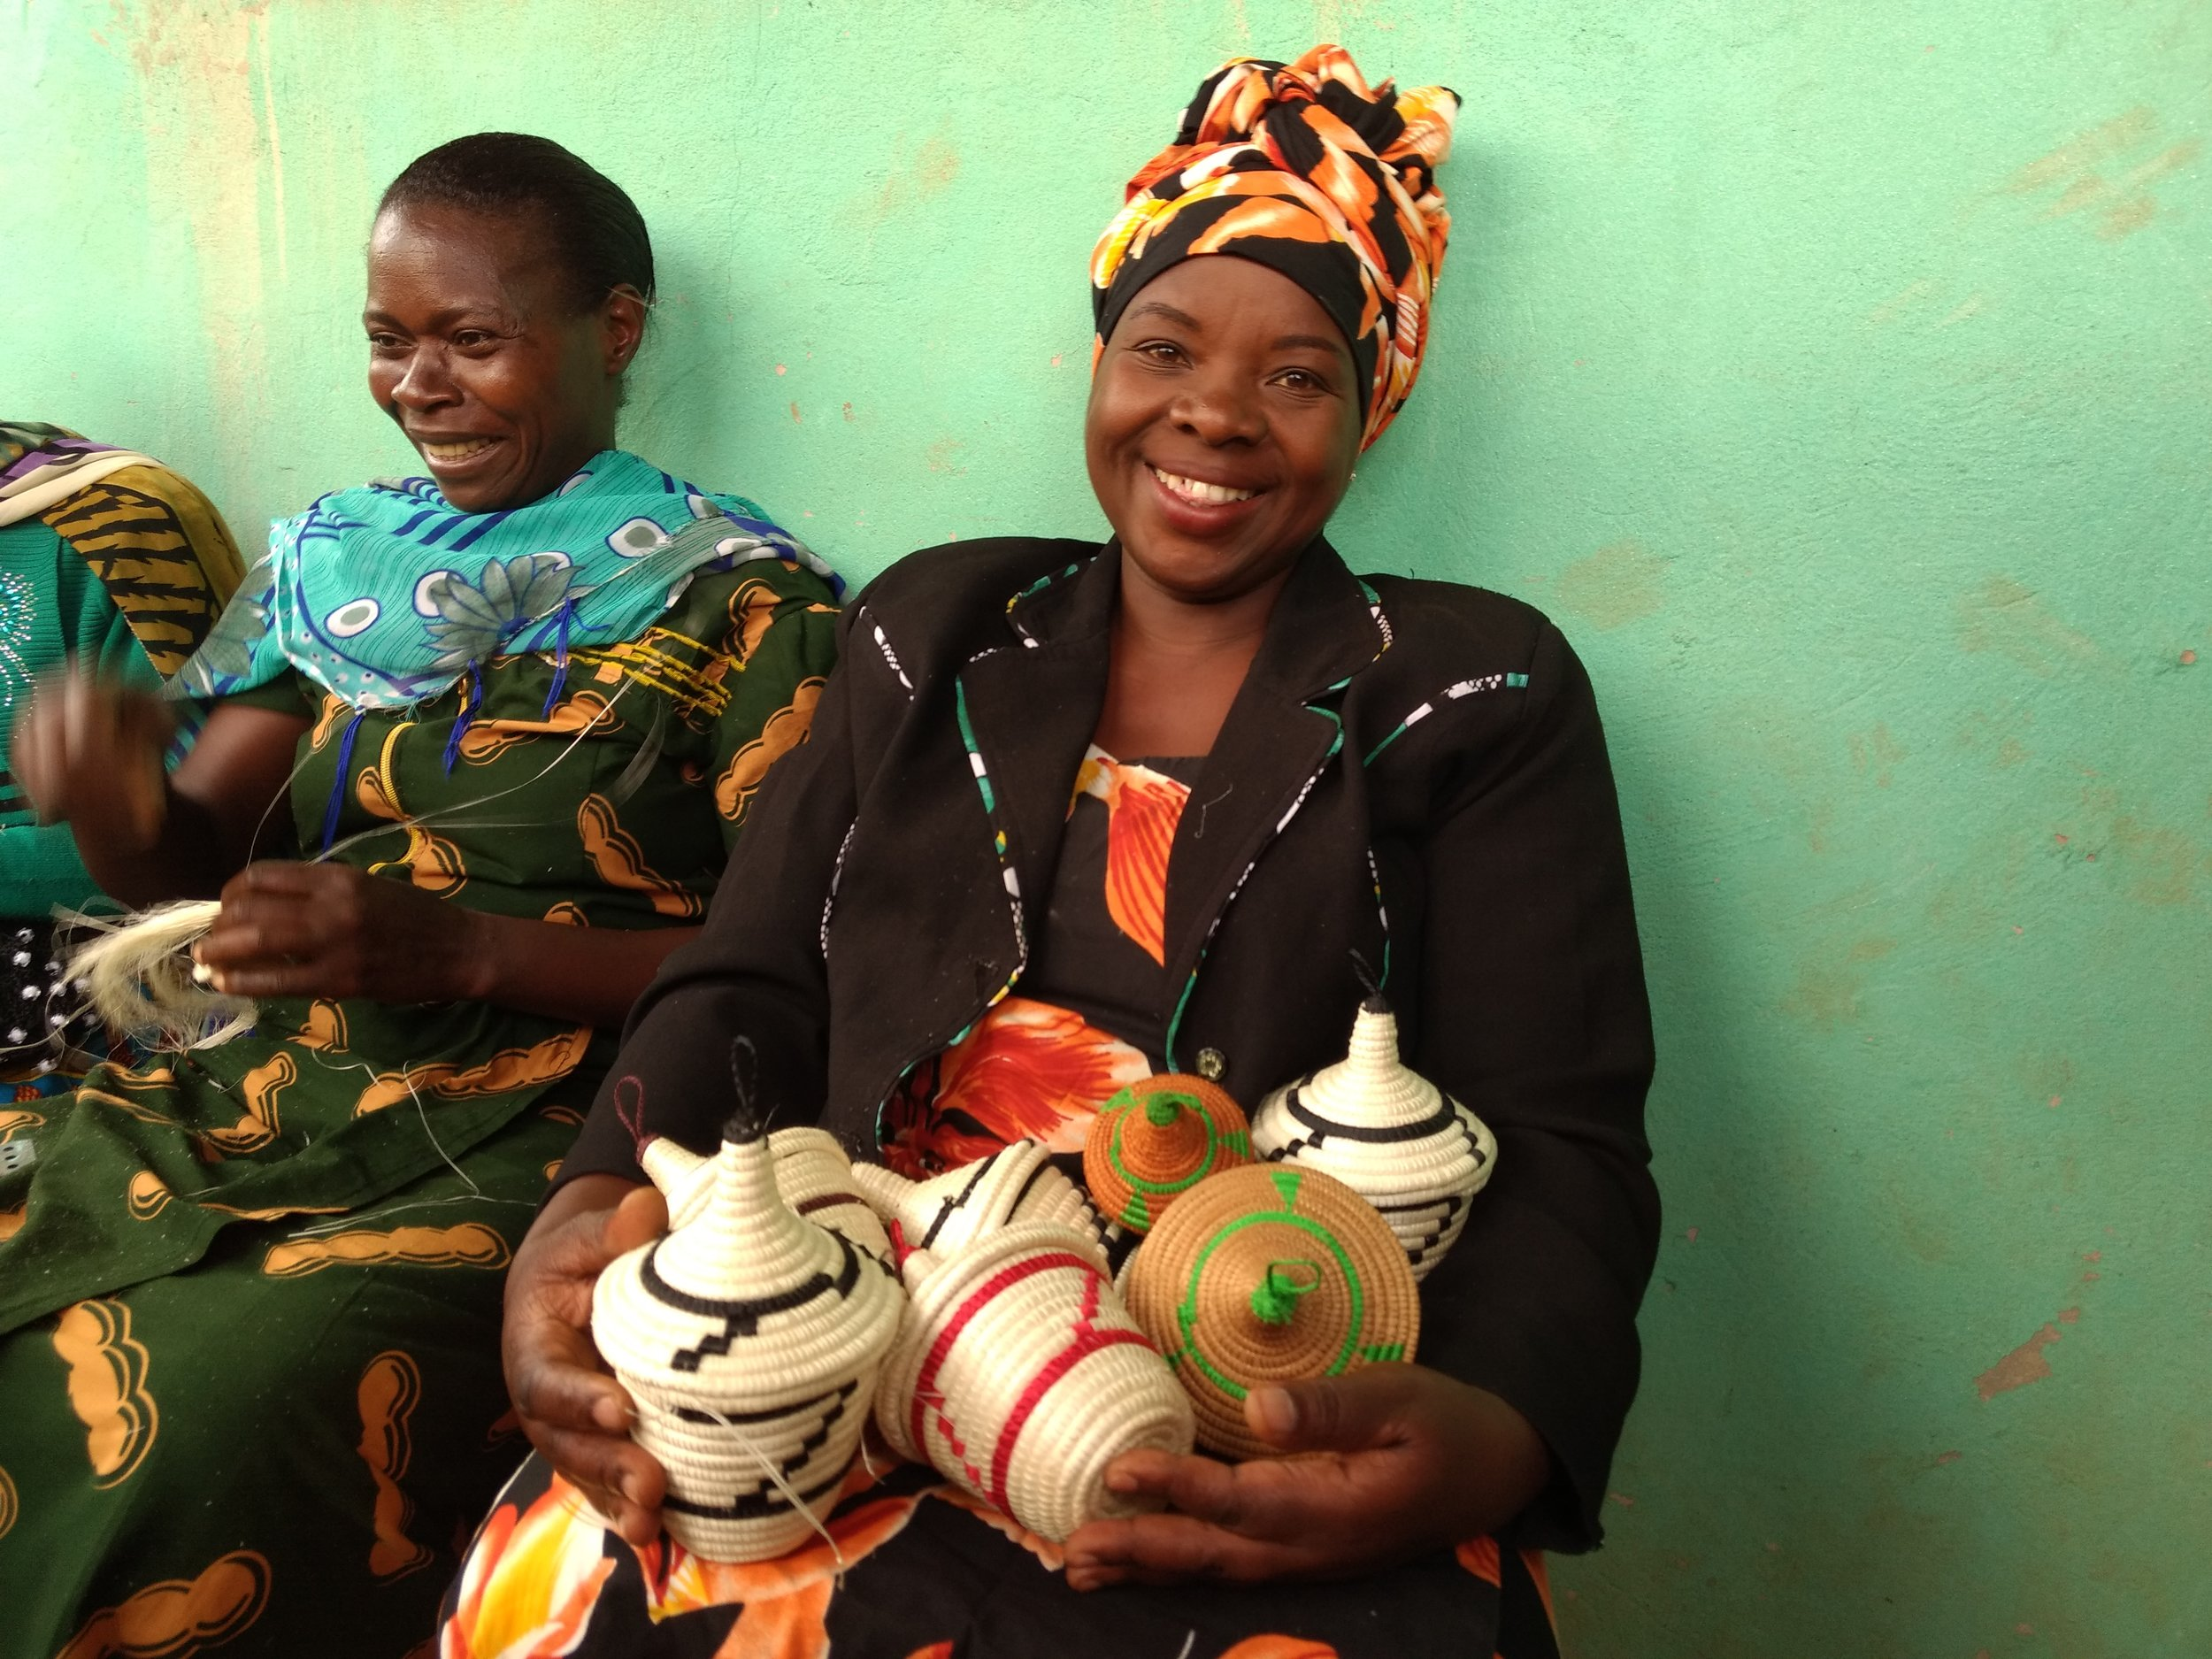 Annonciate is our partner in Rwanda who leads UMUTUZO North, an association of women dedicated to economic advancement and healthy families.